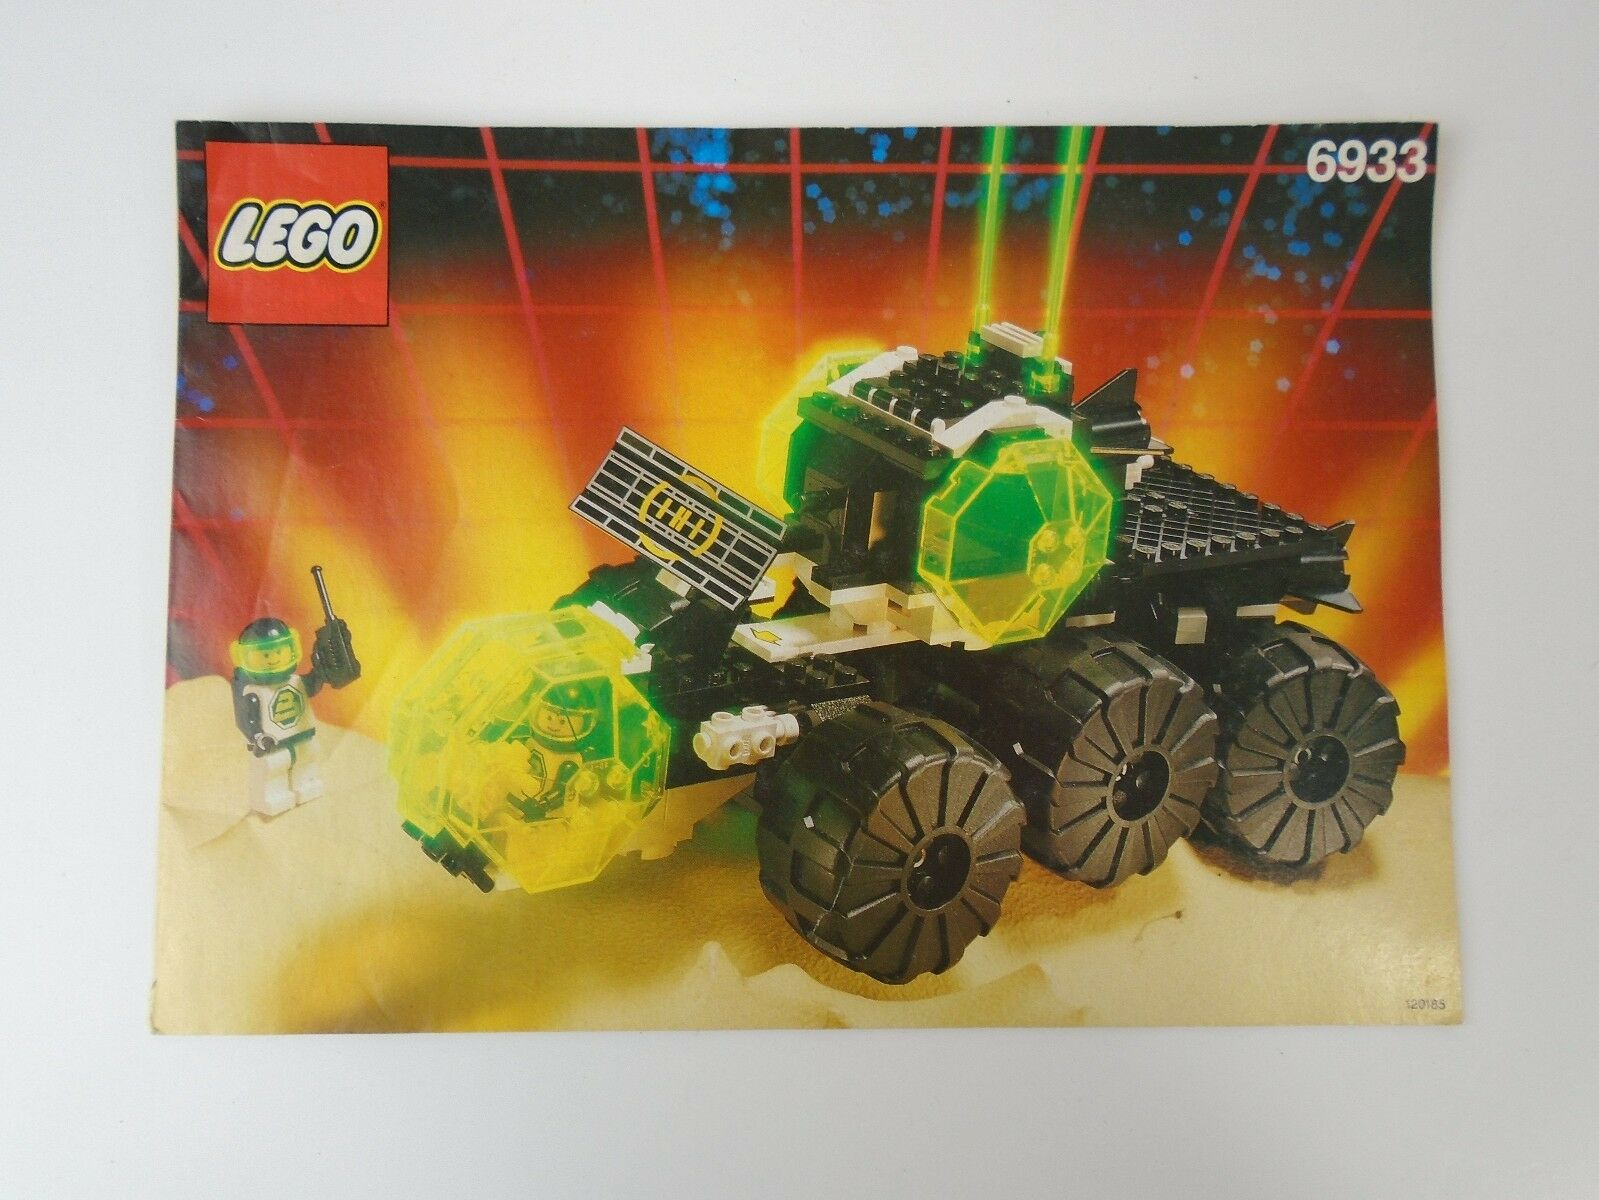 Lego Space Classic 6933 Blacktron Spectral Starguider Instructions